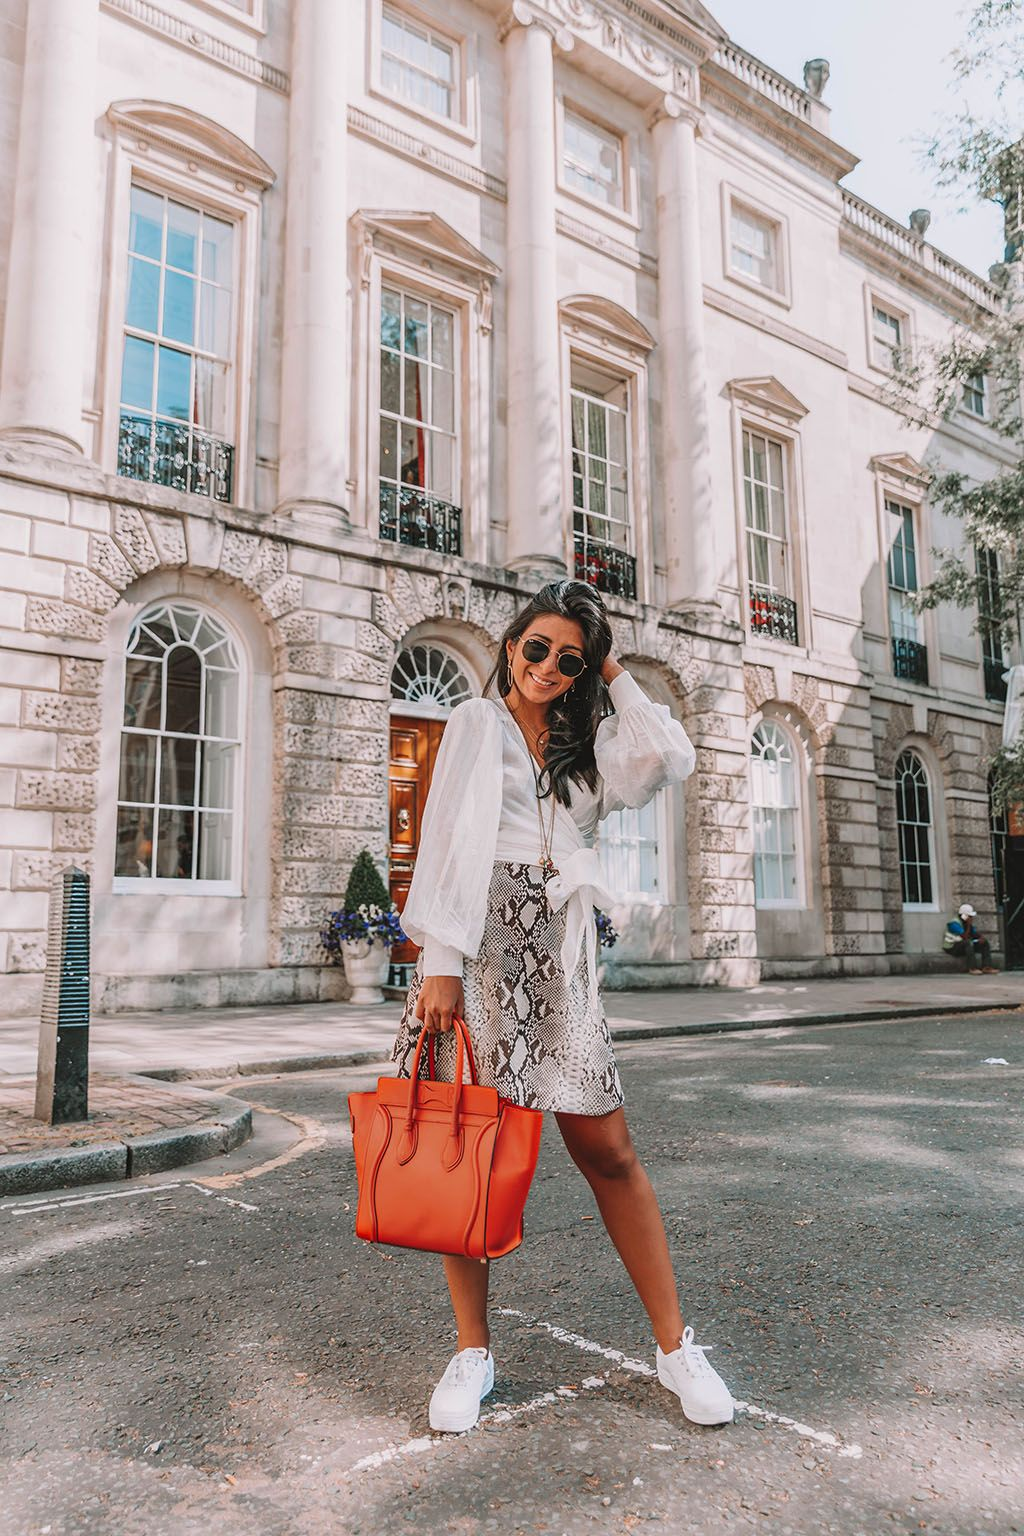 f1a6bc88f554b6 Fashion blogger Shloka Narang of The Silk Sneaker shares the summer blouse  you need to create a cute summer outfit featuring ba&sh, Celine and Ray-Ban